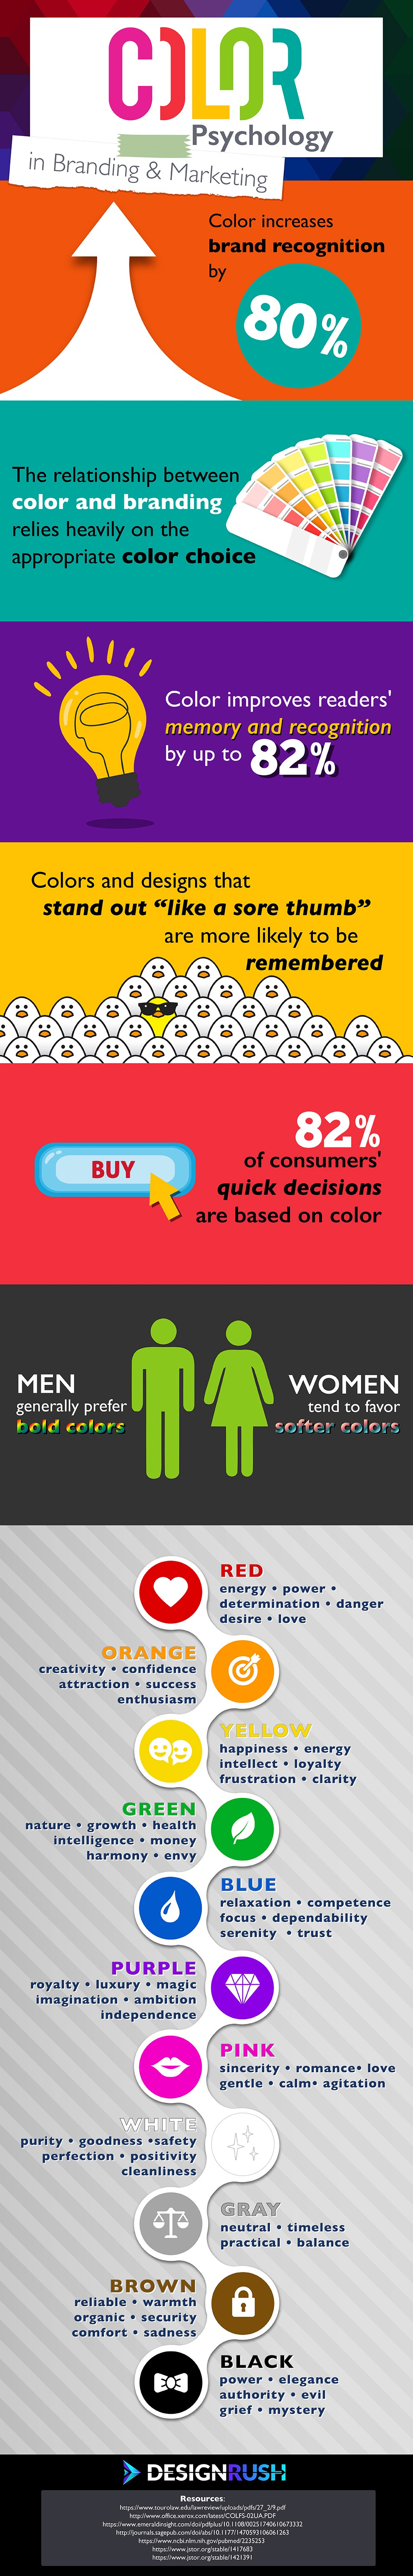 the psychological effects of marketing Color psychology makes a major impact on your marketing and design initiatives because it evokes emotion and causes a visceral reaction in consumers color psychology can shed some light on the effects color has on consumer behaviors, consumer perceptions and consumer feelings.